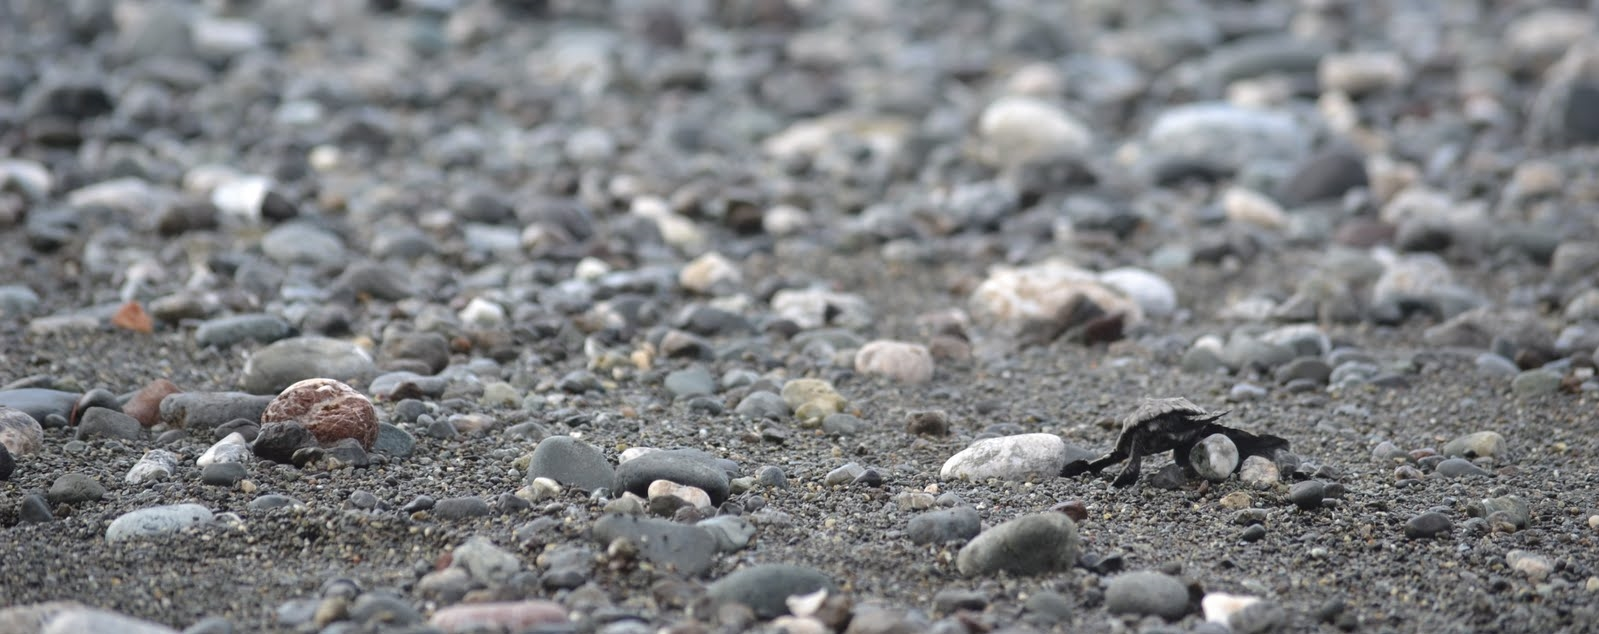 There is a newborn turtle in this photo! And it is a long journey to the surf. Photo: Owen Liu, 2011